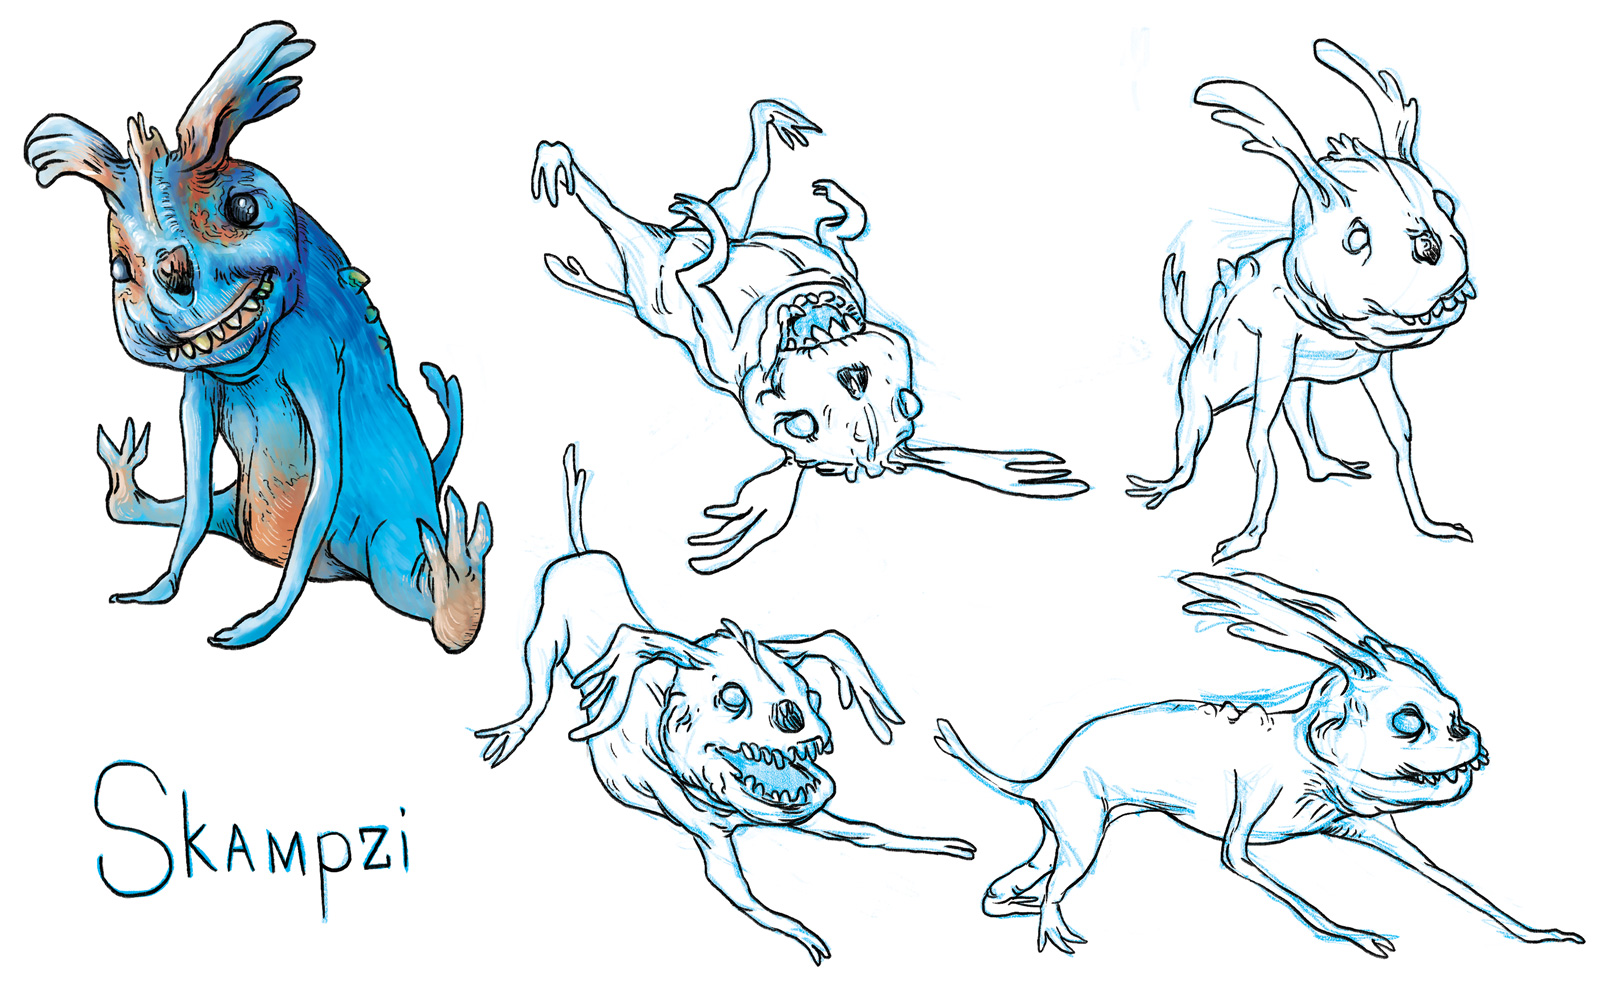 character concepts for Skampzi that lovable alien dog